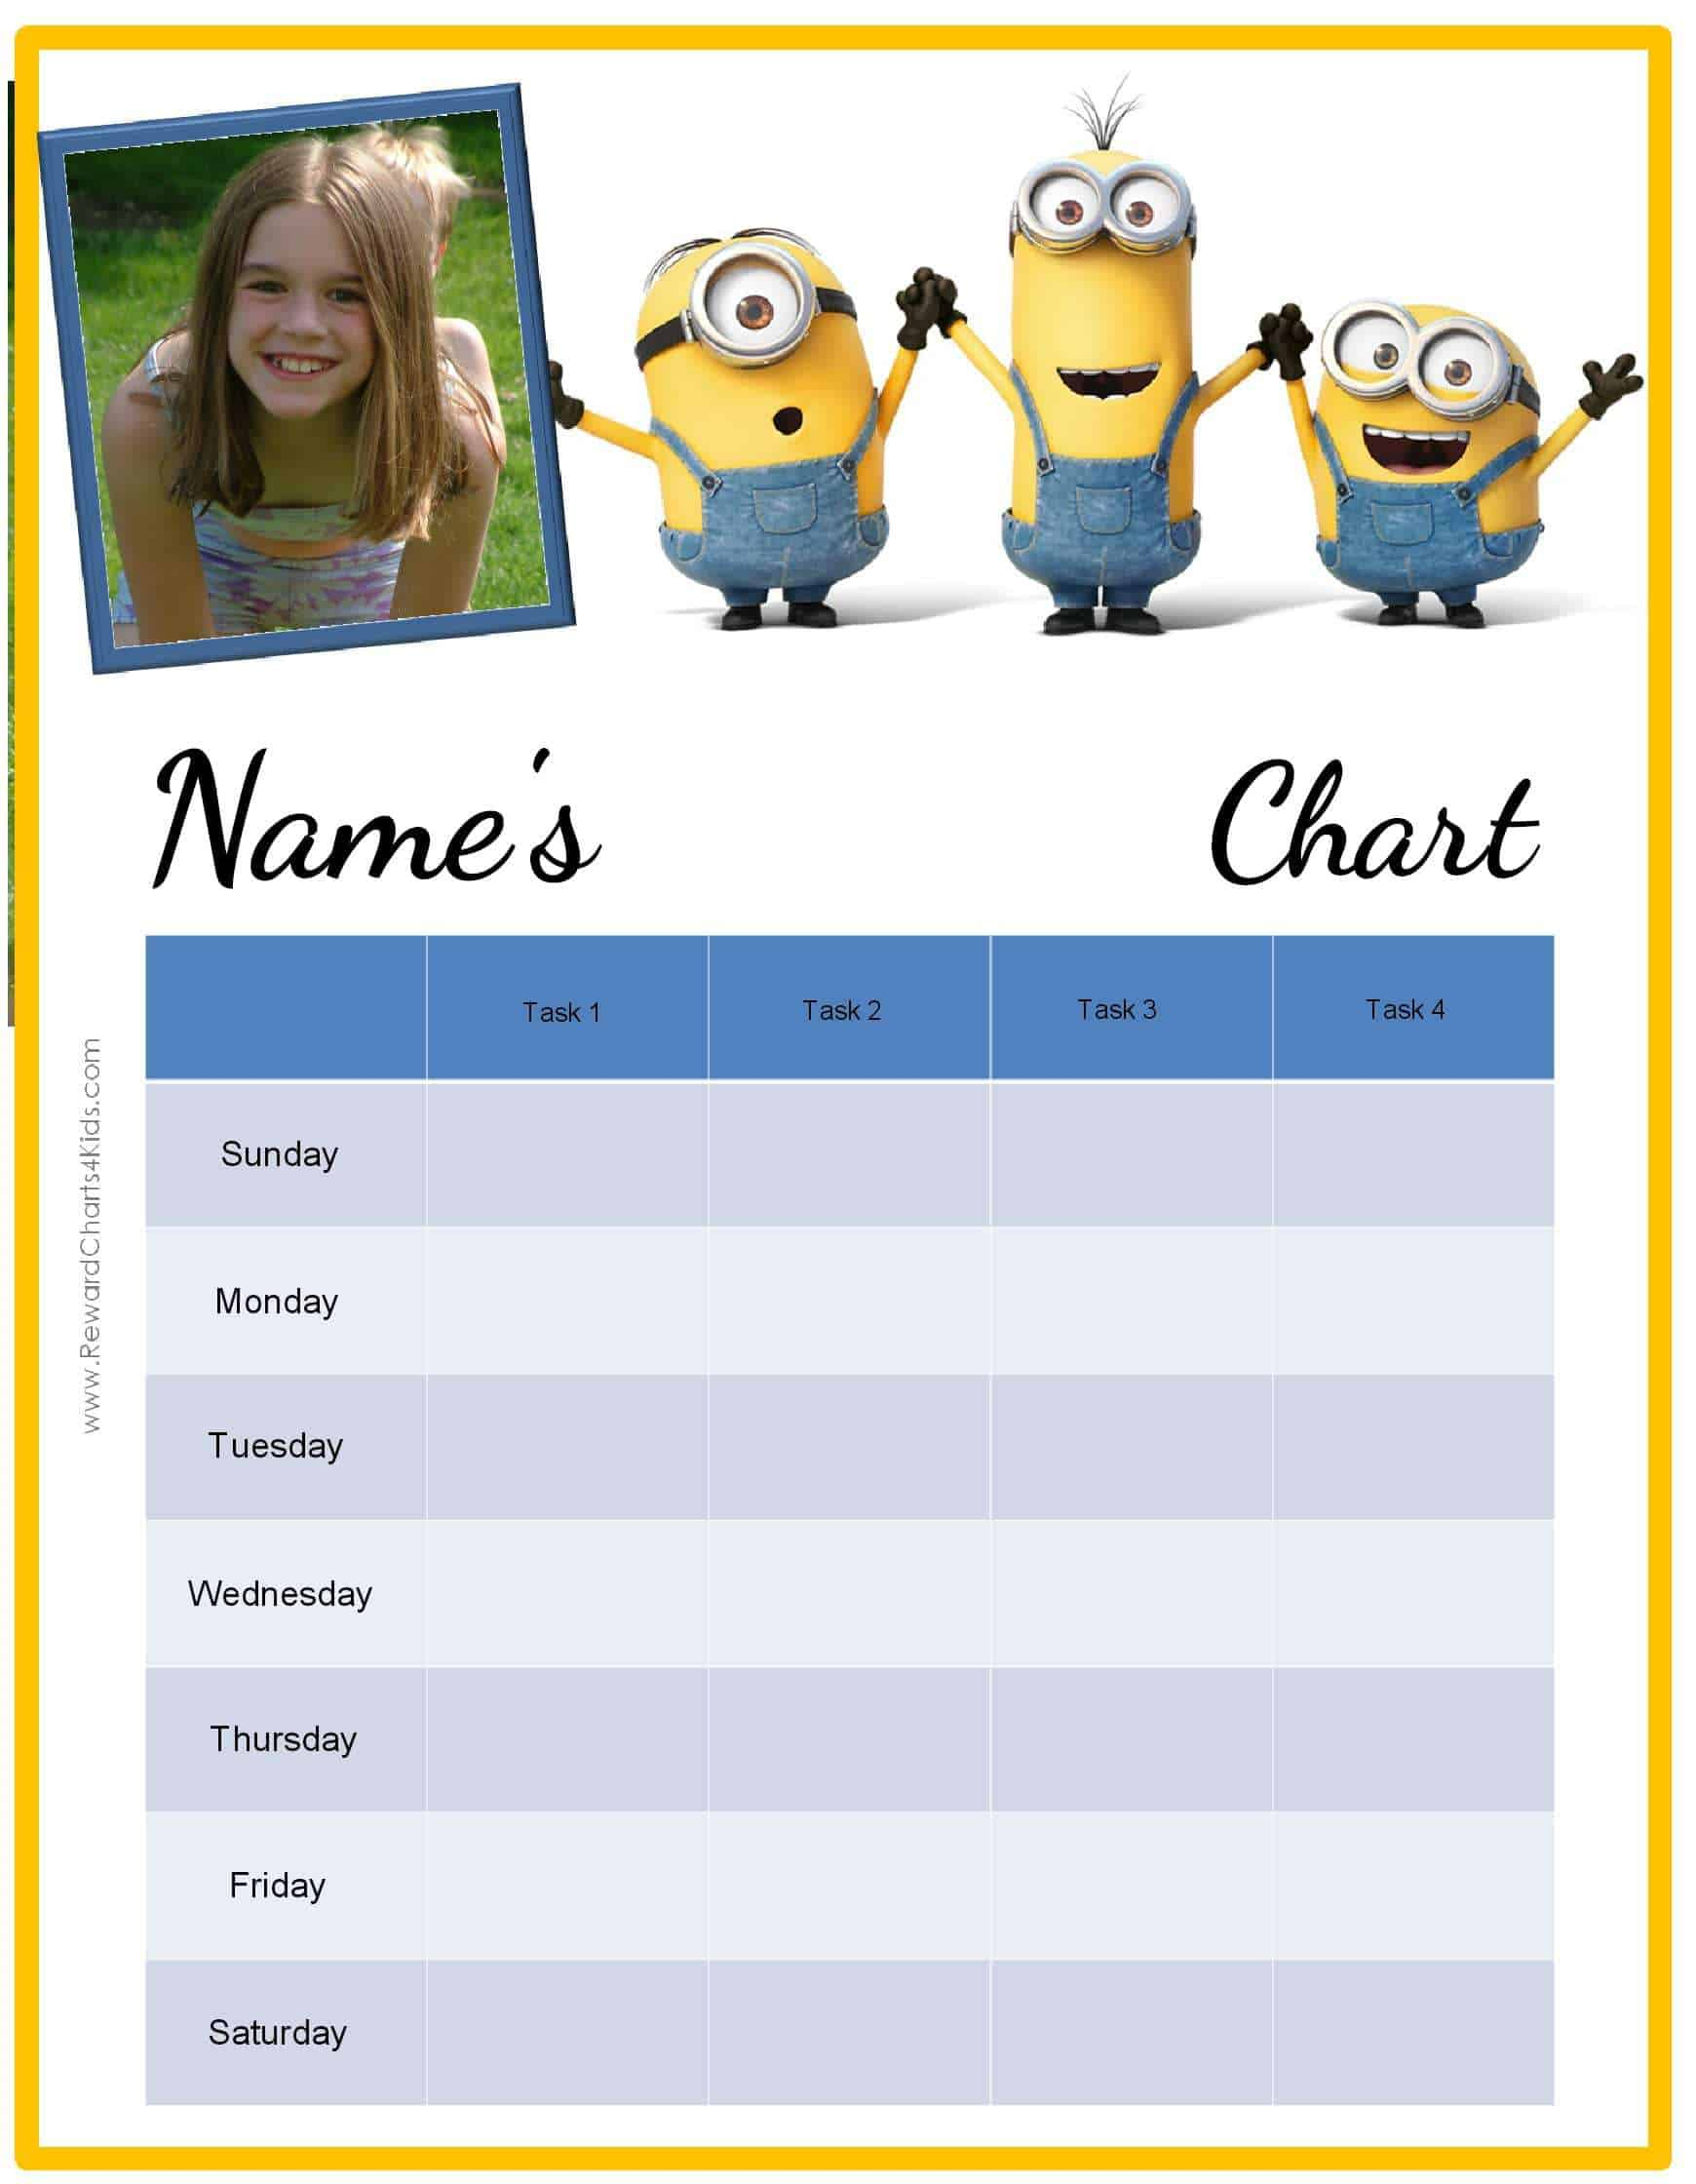 children behavior Parenting tips and free kids charts all-in-one resource center with classroom behavior tools, parenting articles and kids reward system: kid pointz.